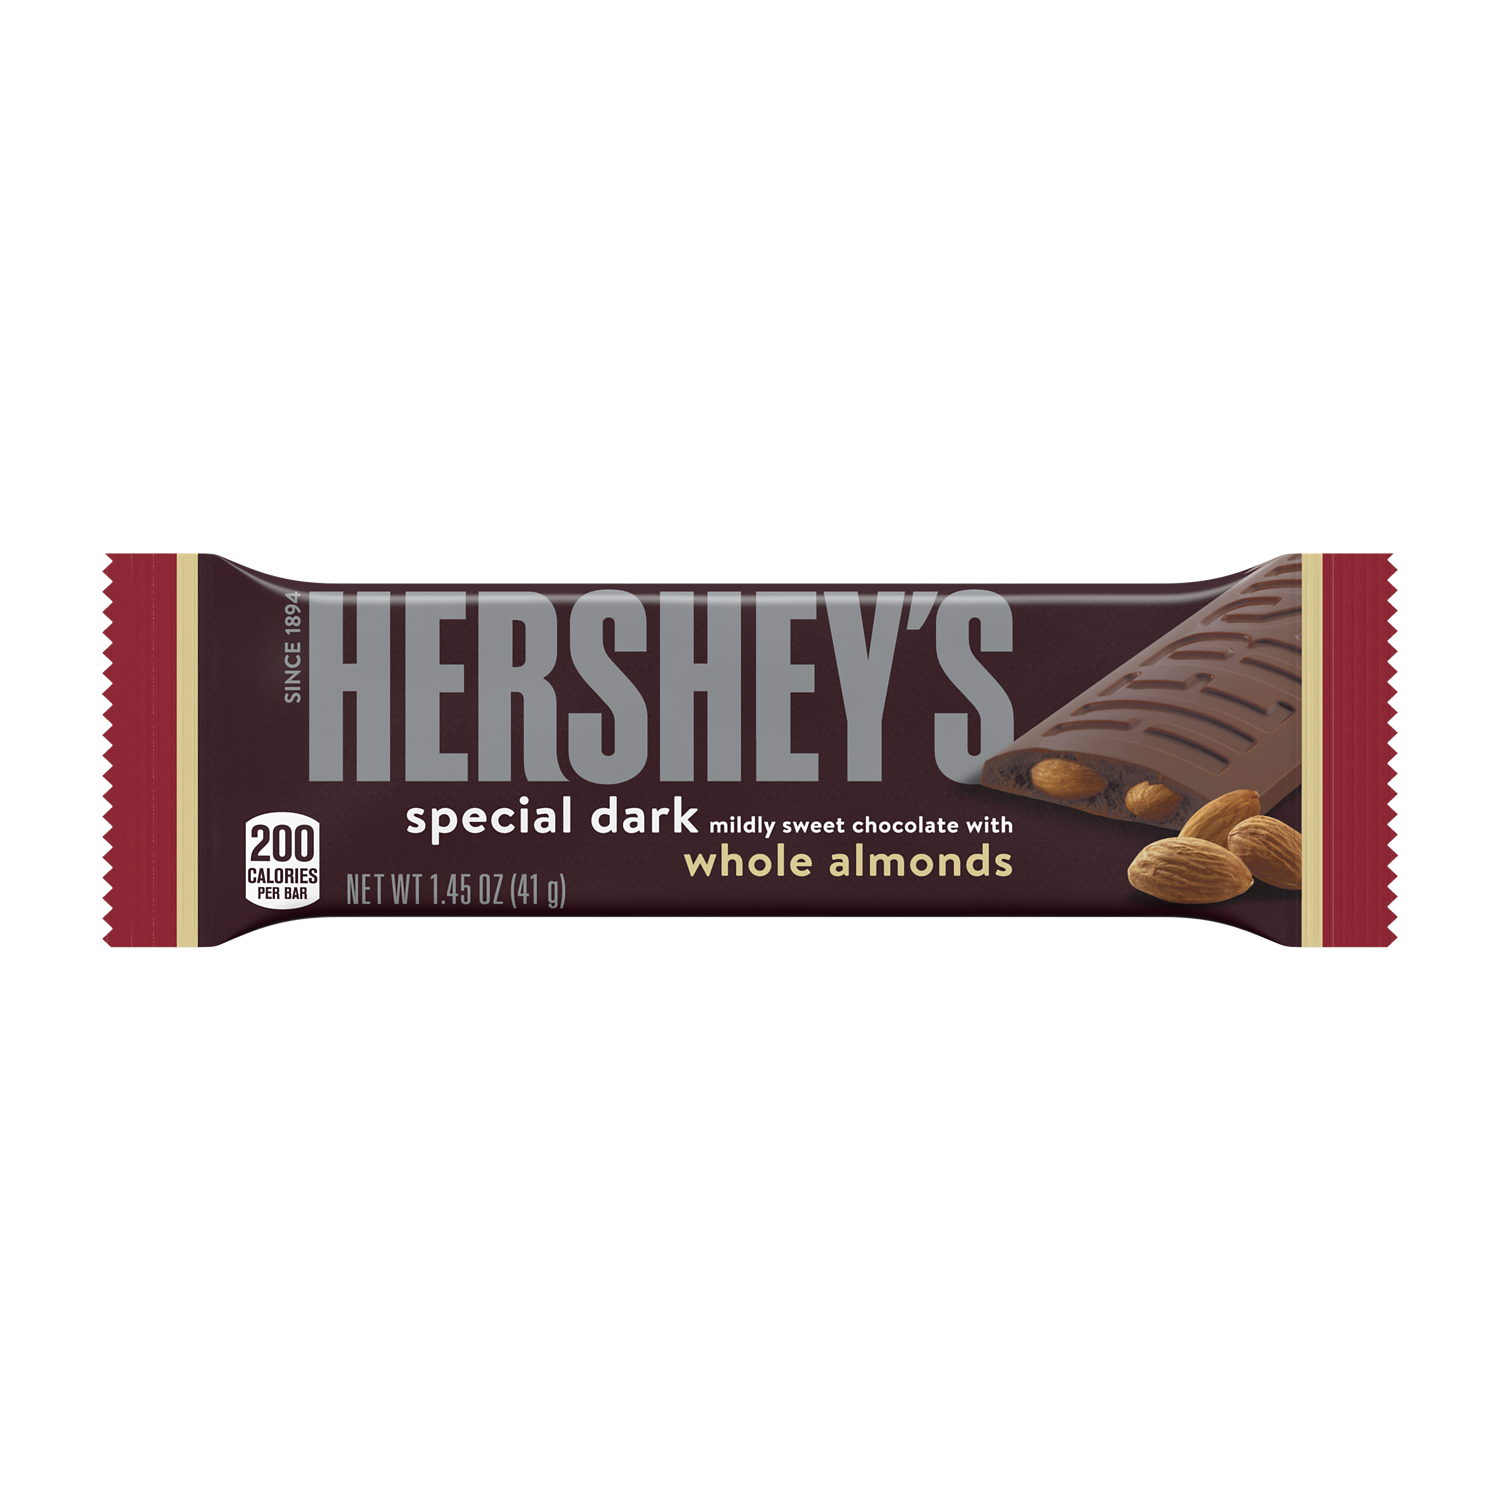 HERSHEY'S SPECIAL DARK Mildly Sweet Chocolate with Almonds Candy Bar, 1.45 oz - Front of Package